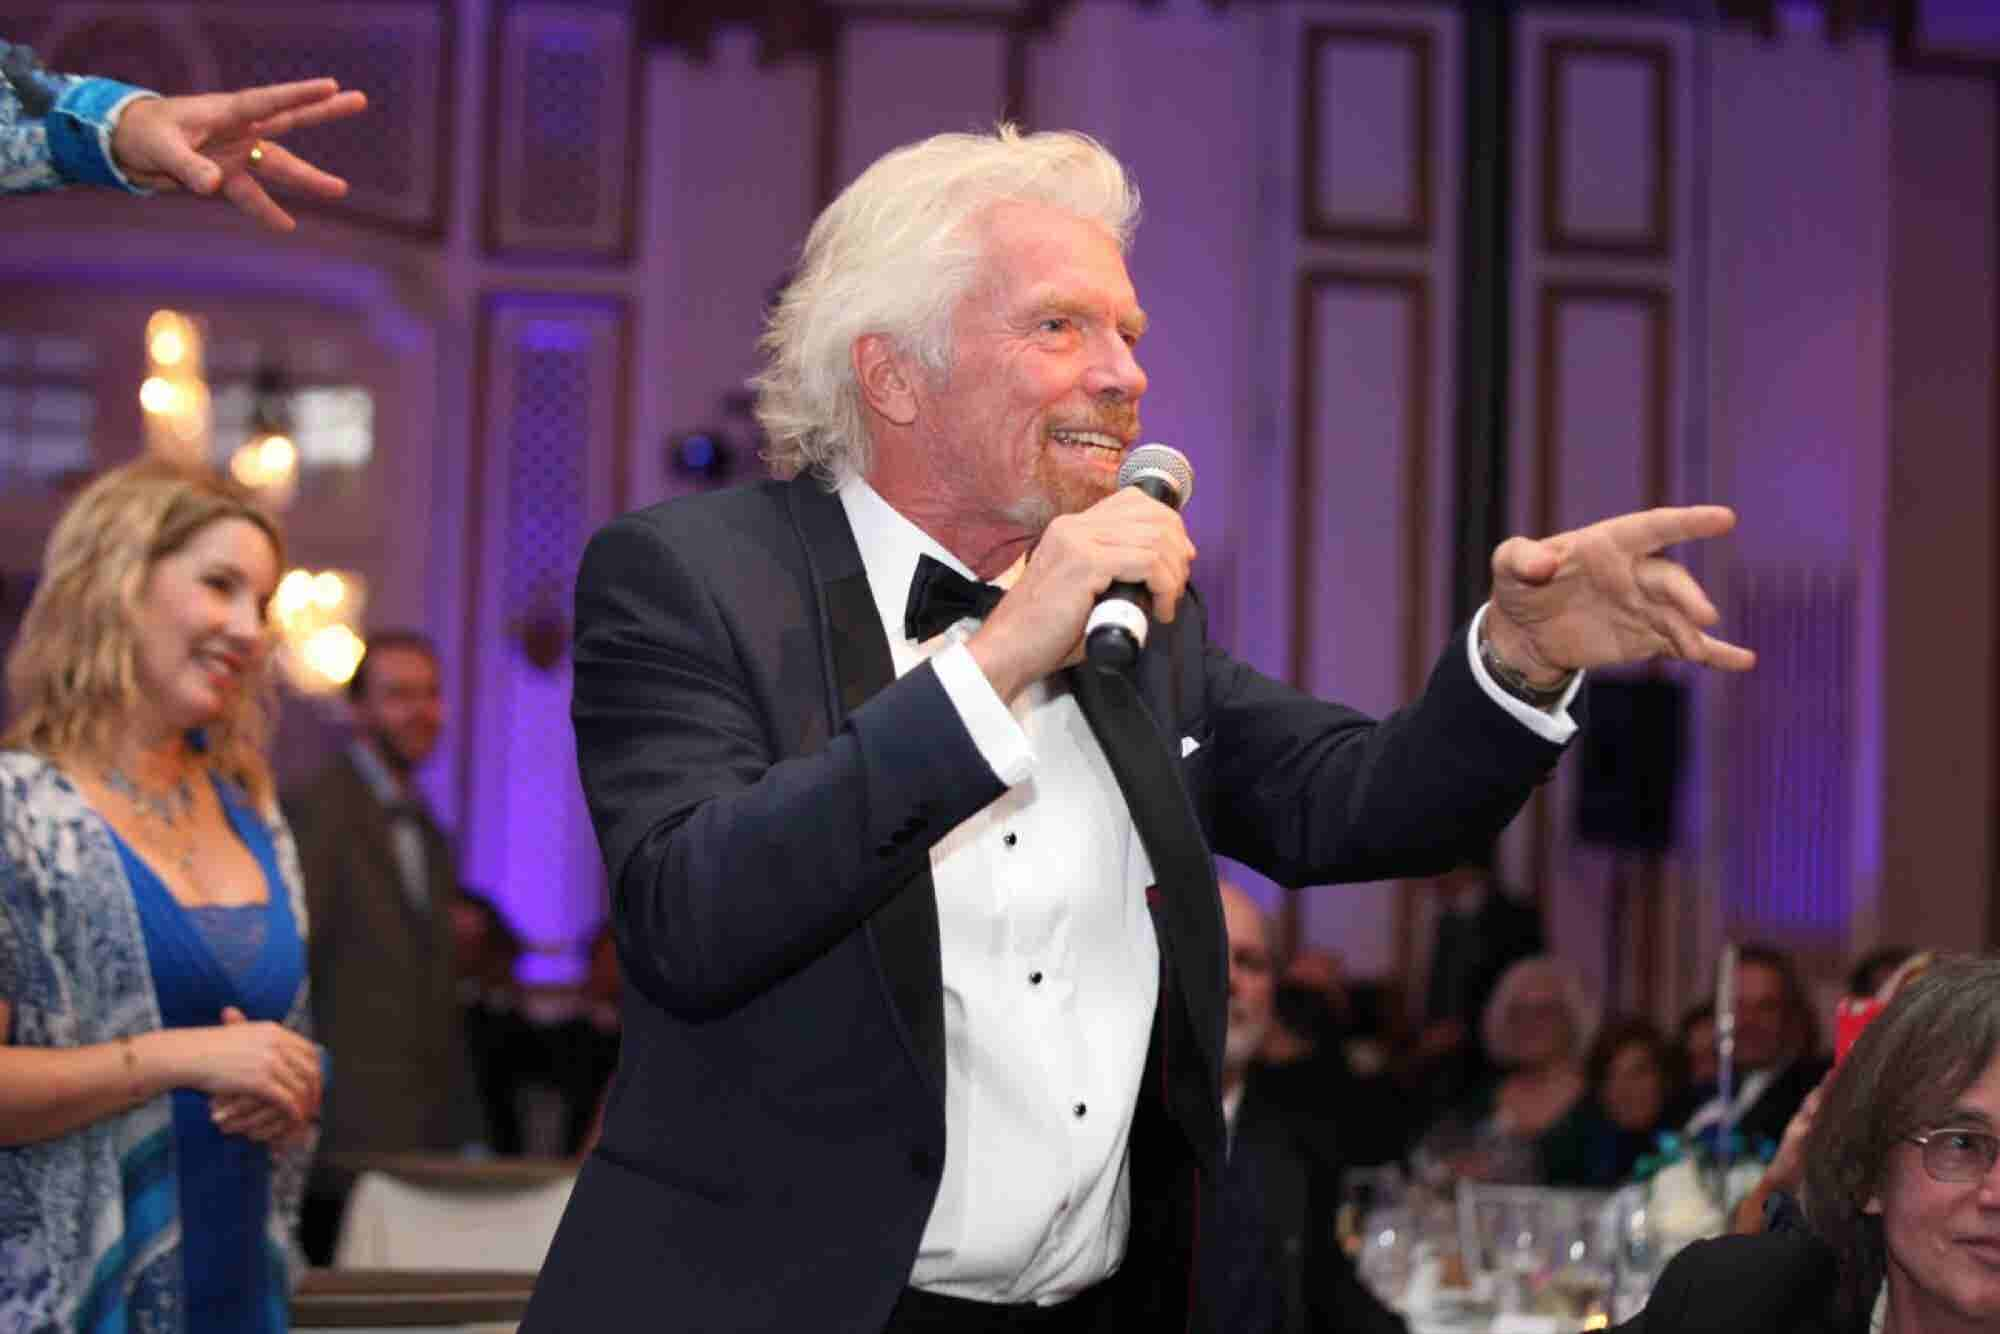 Richard Branson Explains Why He's Different From Elon Musk, and What He Looks For When Investing in Startups